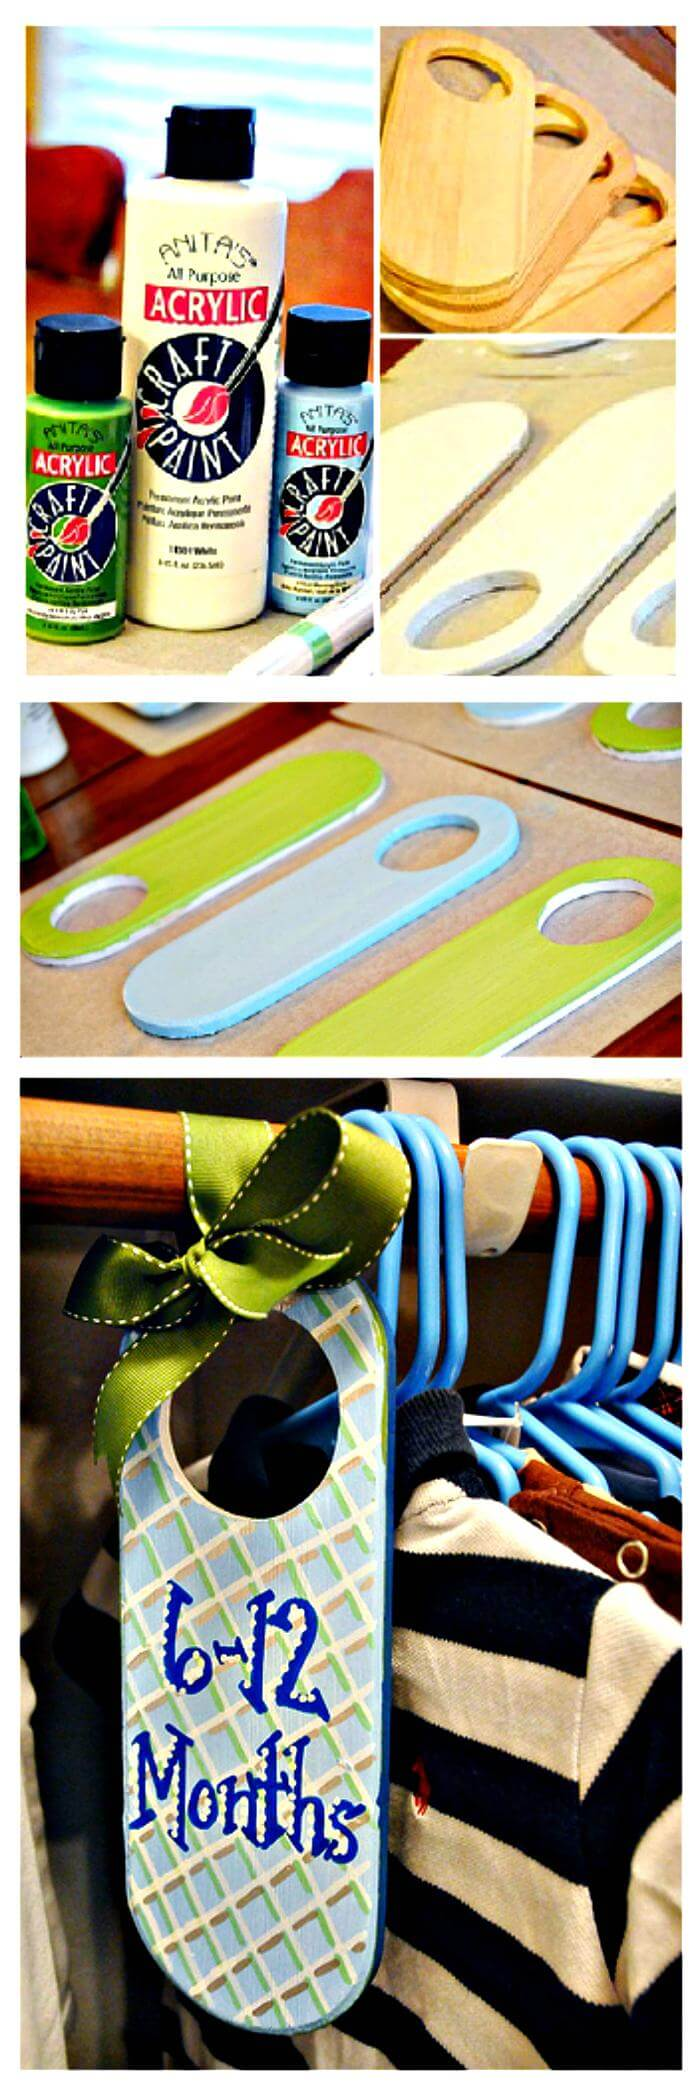 Baby Closet Dividers DIY to Organize Infant Clothing